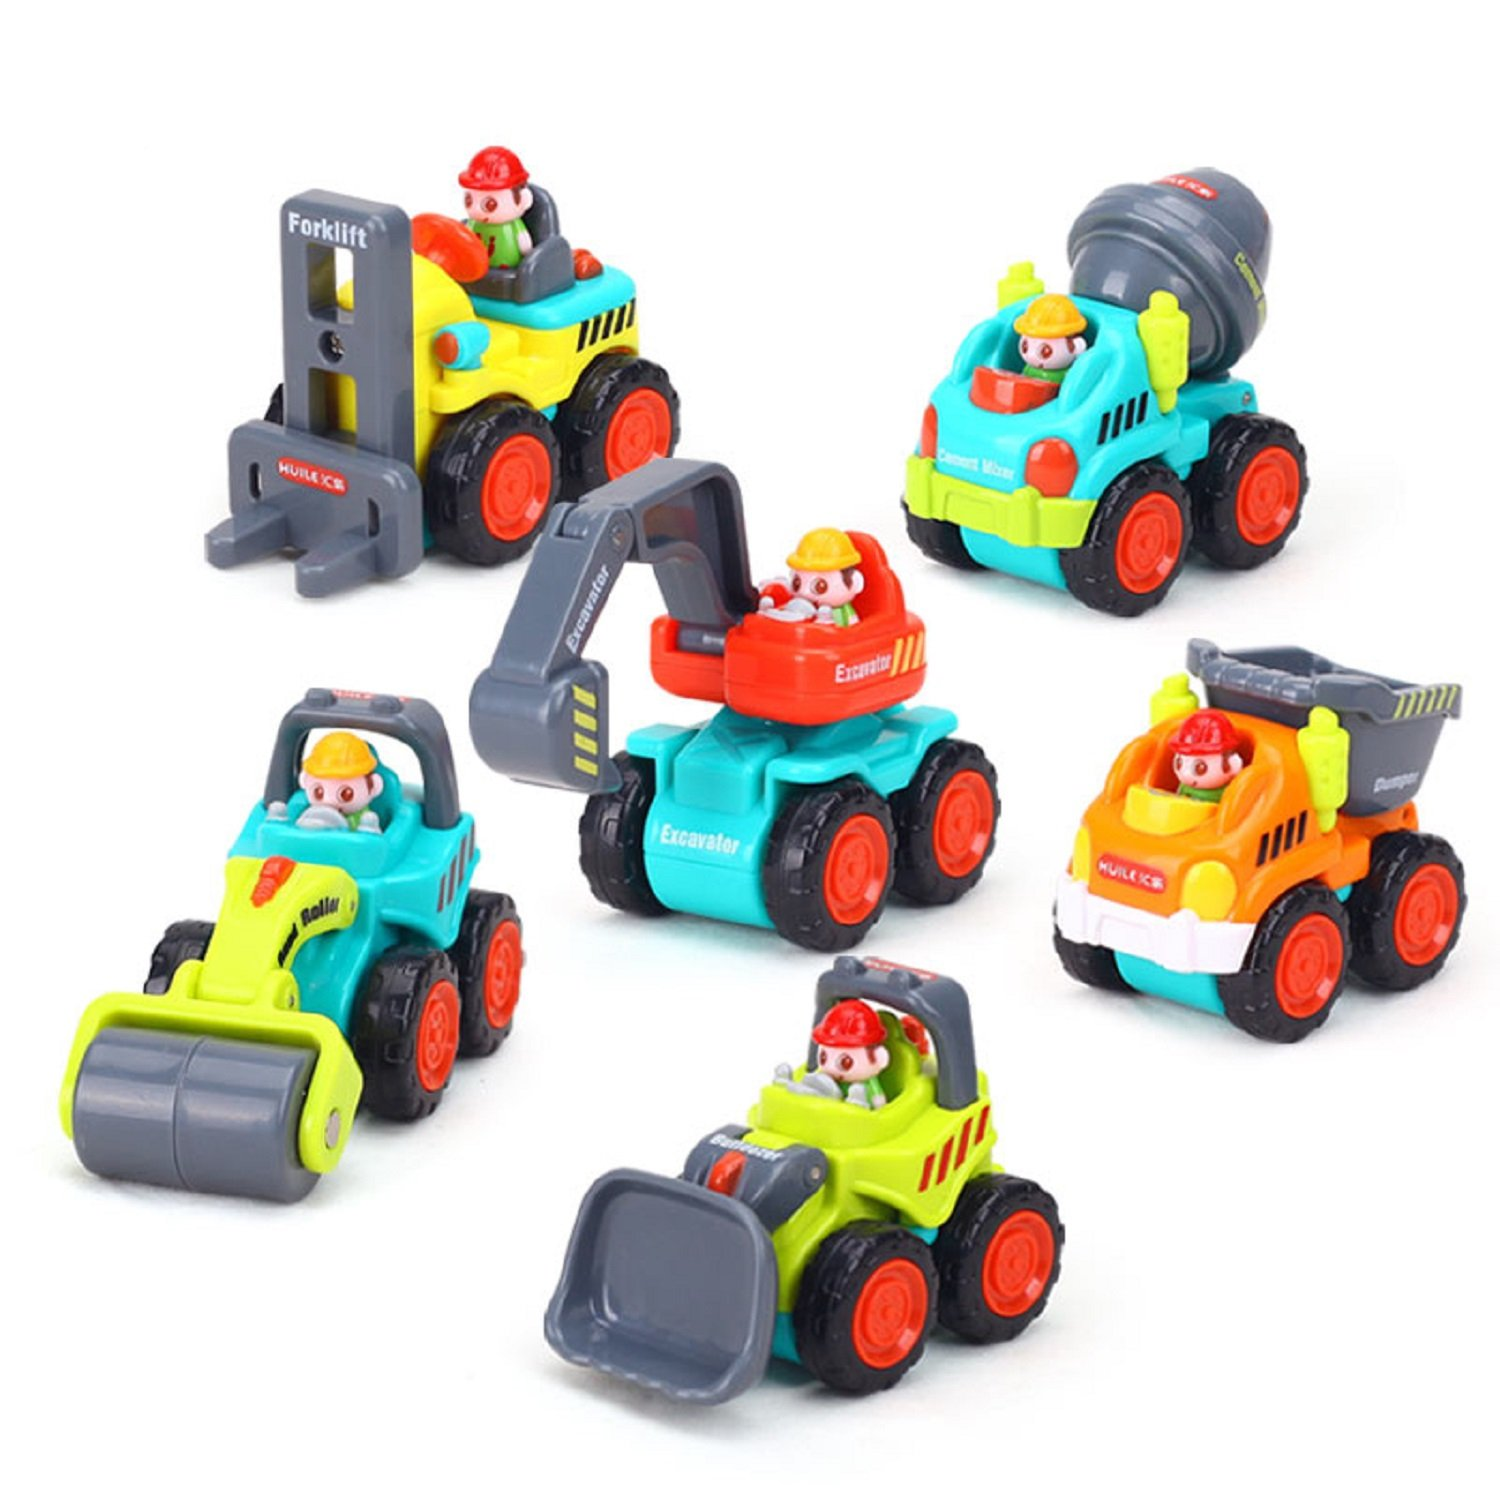 Amazon Sliding Toy Cars Pocket Construction Vehicles Trucks